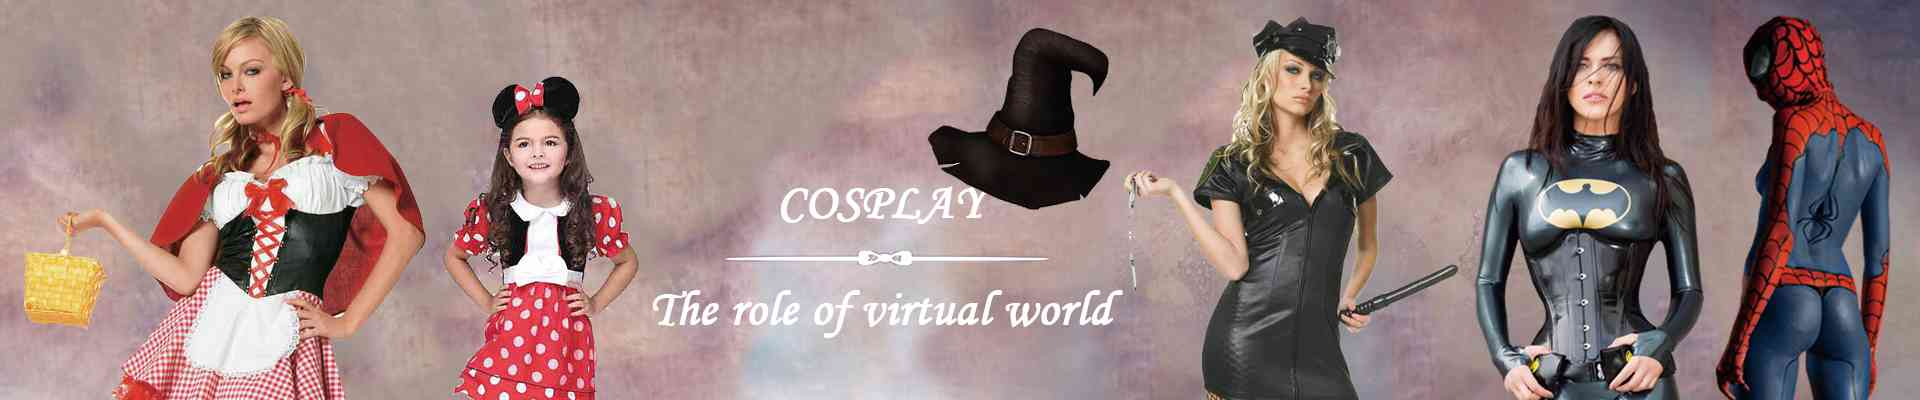 Cosplay clothing introduction